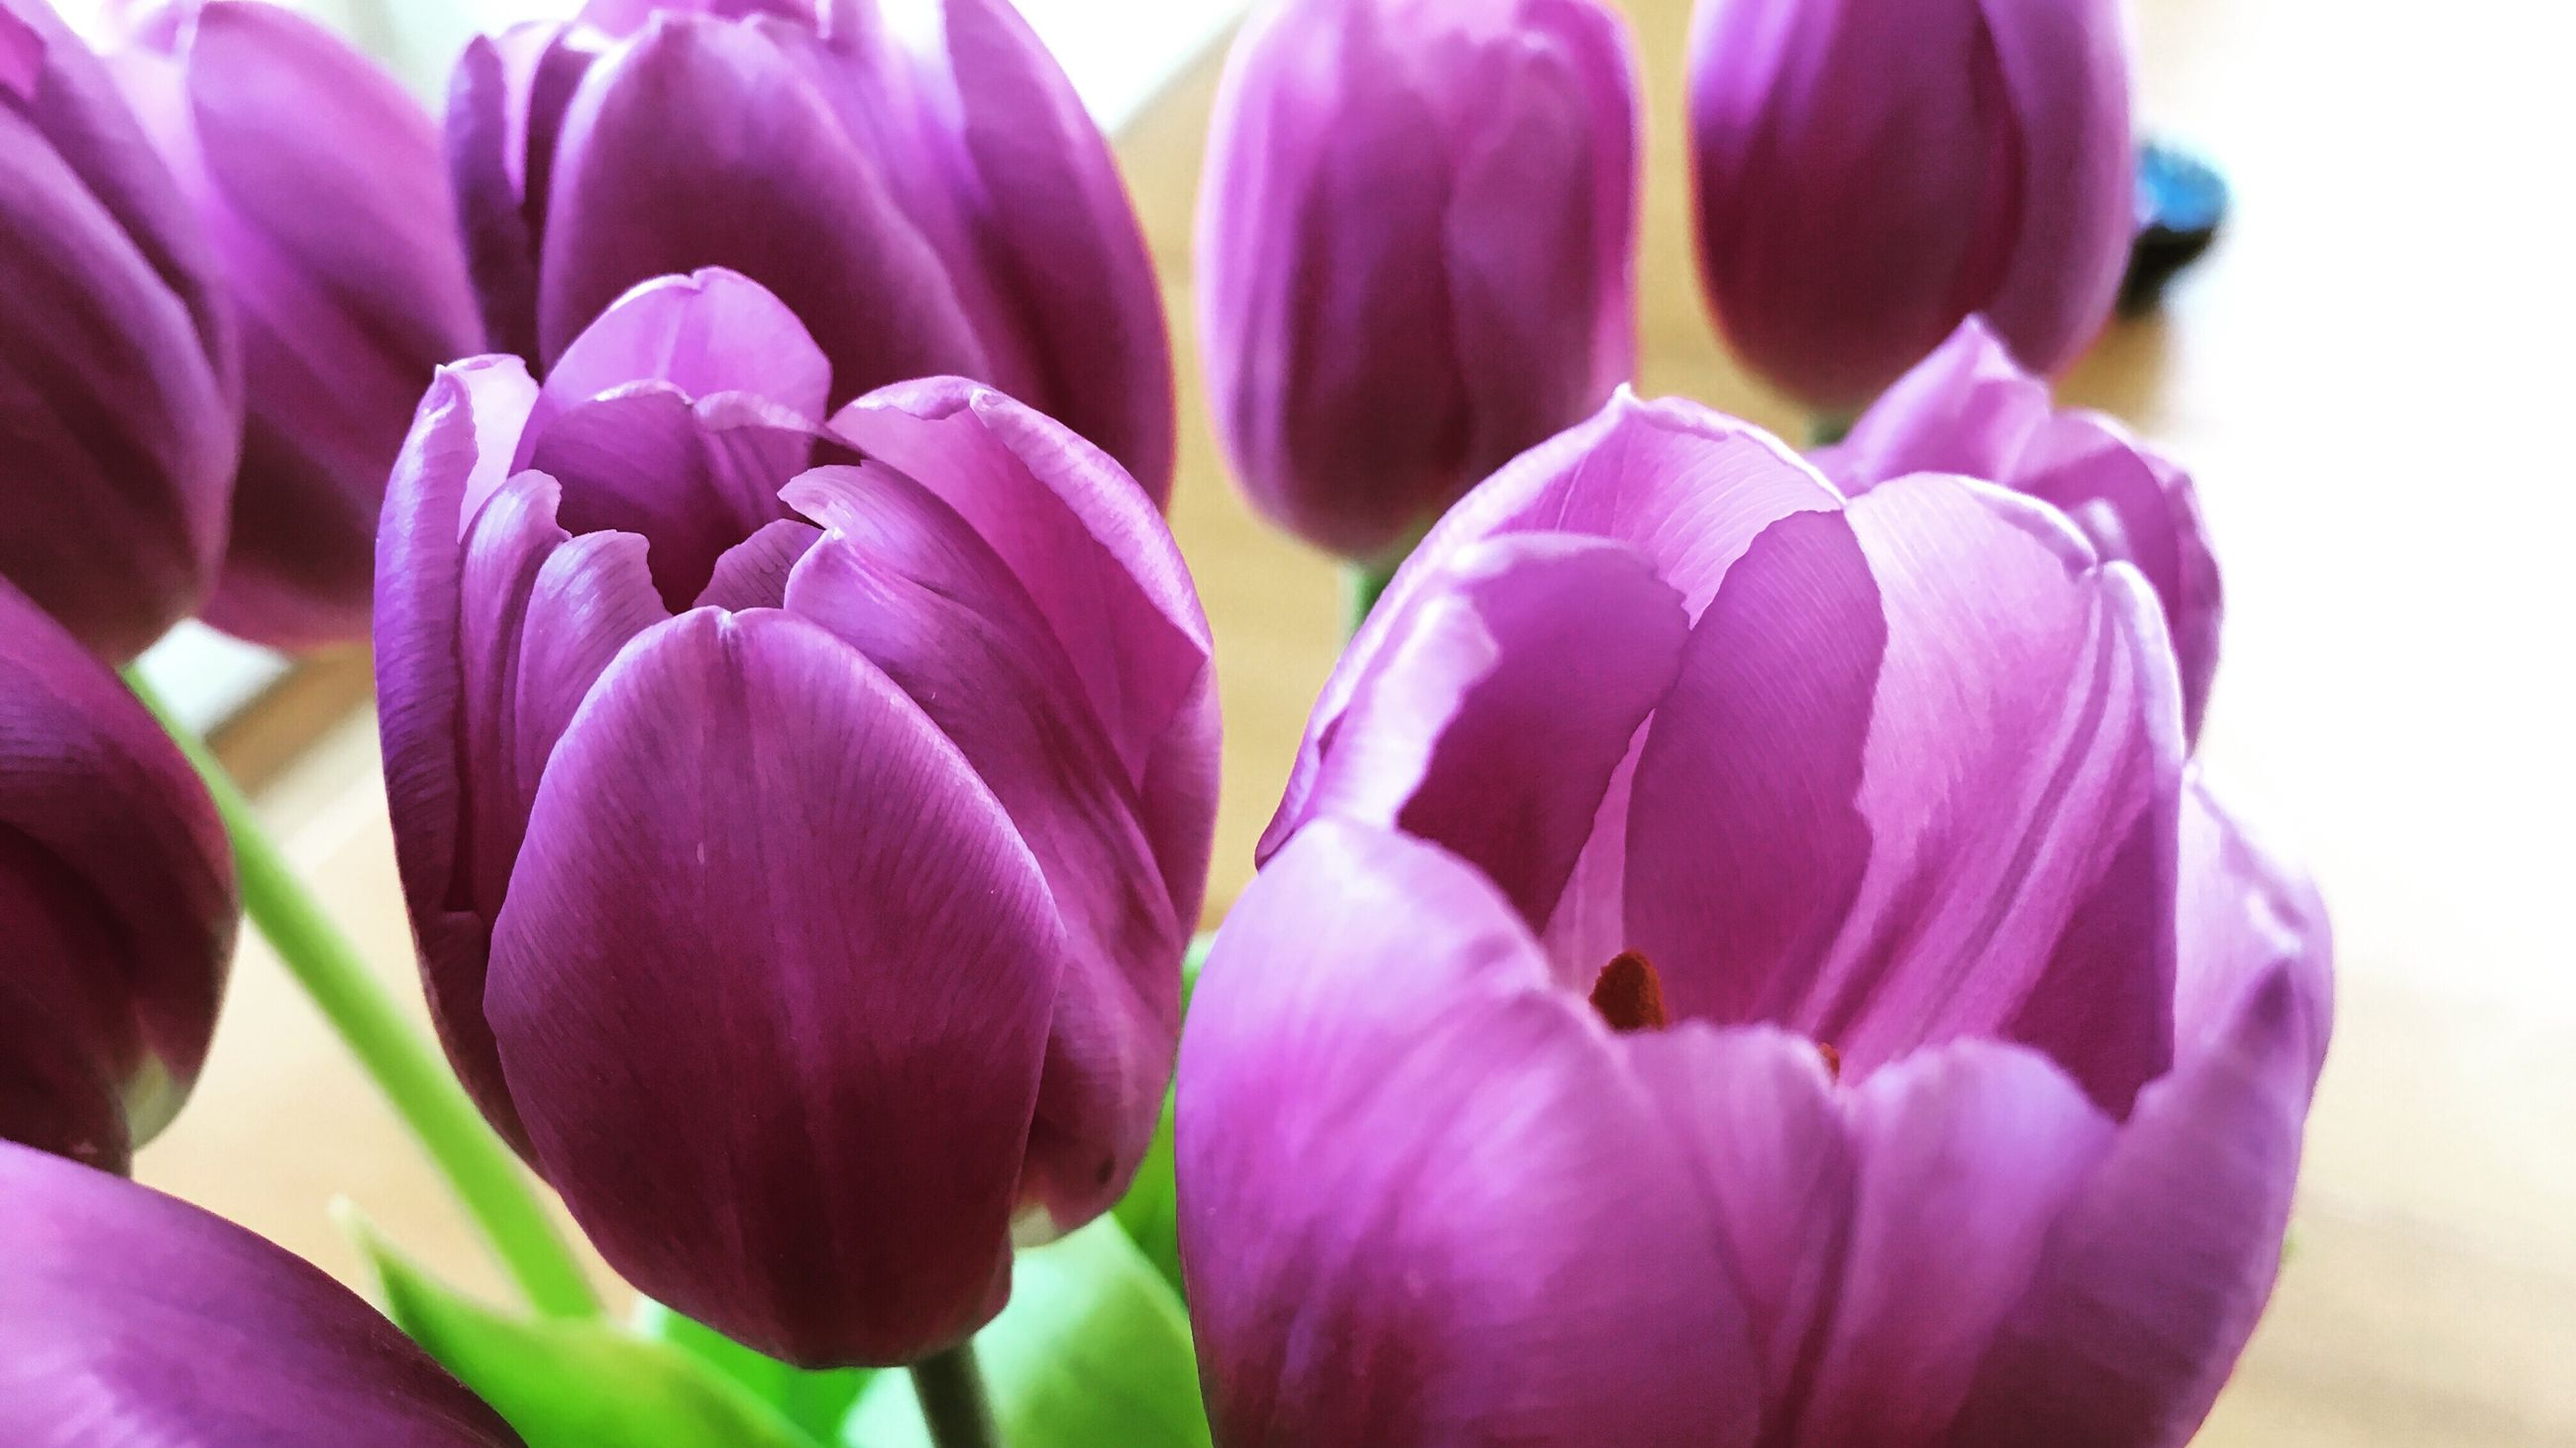 flower, beauty in nature, fragility, petal, nature, freshness, purple, growth, flower head, pink color, close-up, blooming, plant, no people, orchid, outdoors, day, crocus